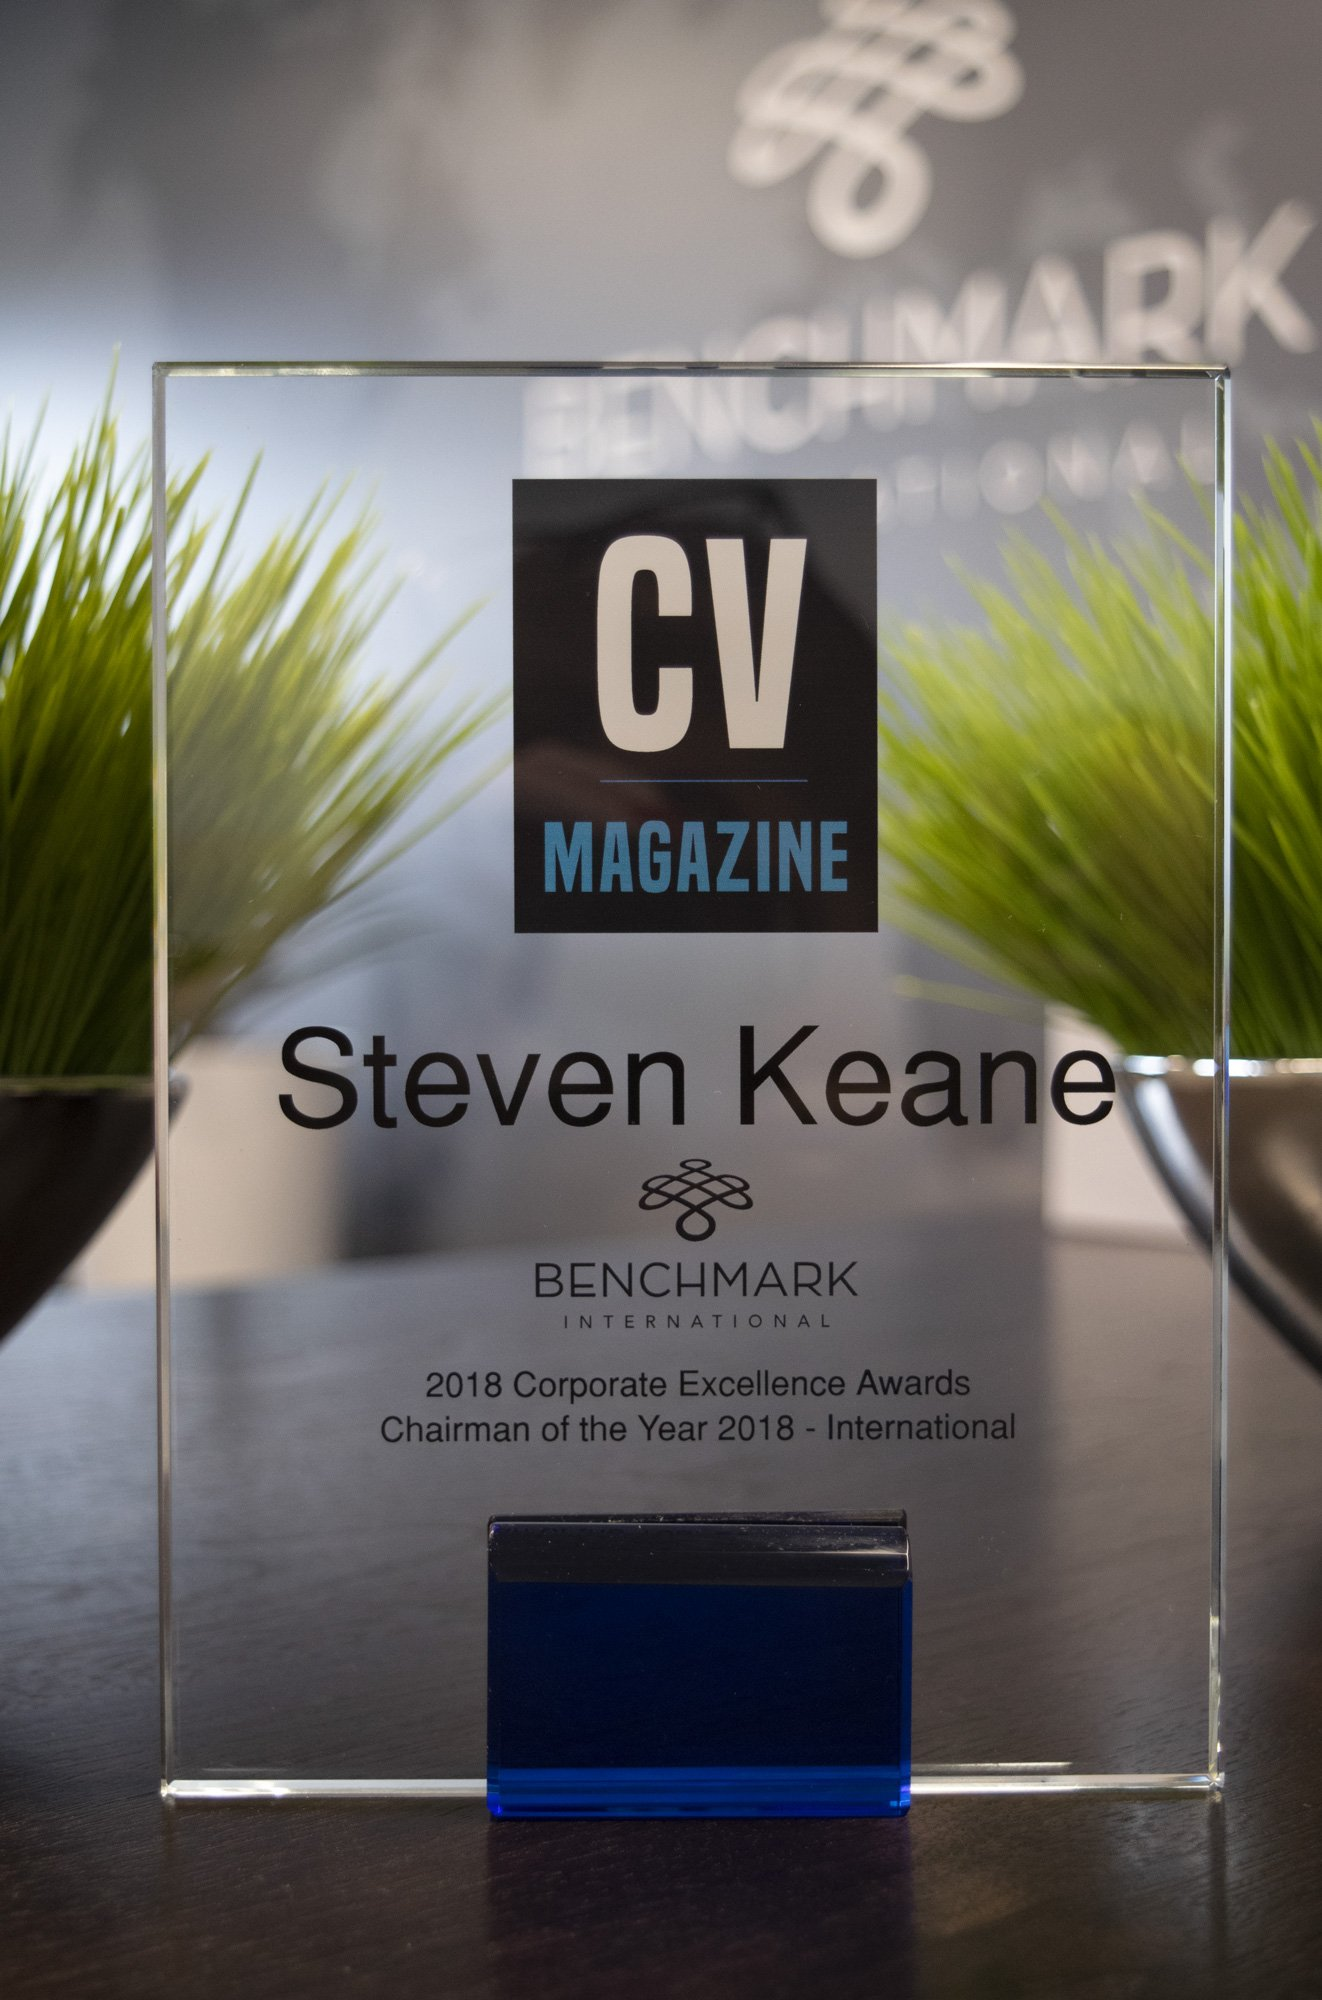 Chairman of the Year 2018 Award Acquisition International Benchmark